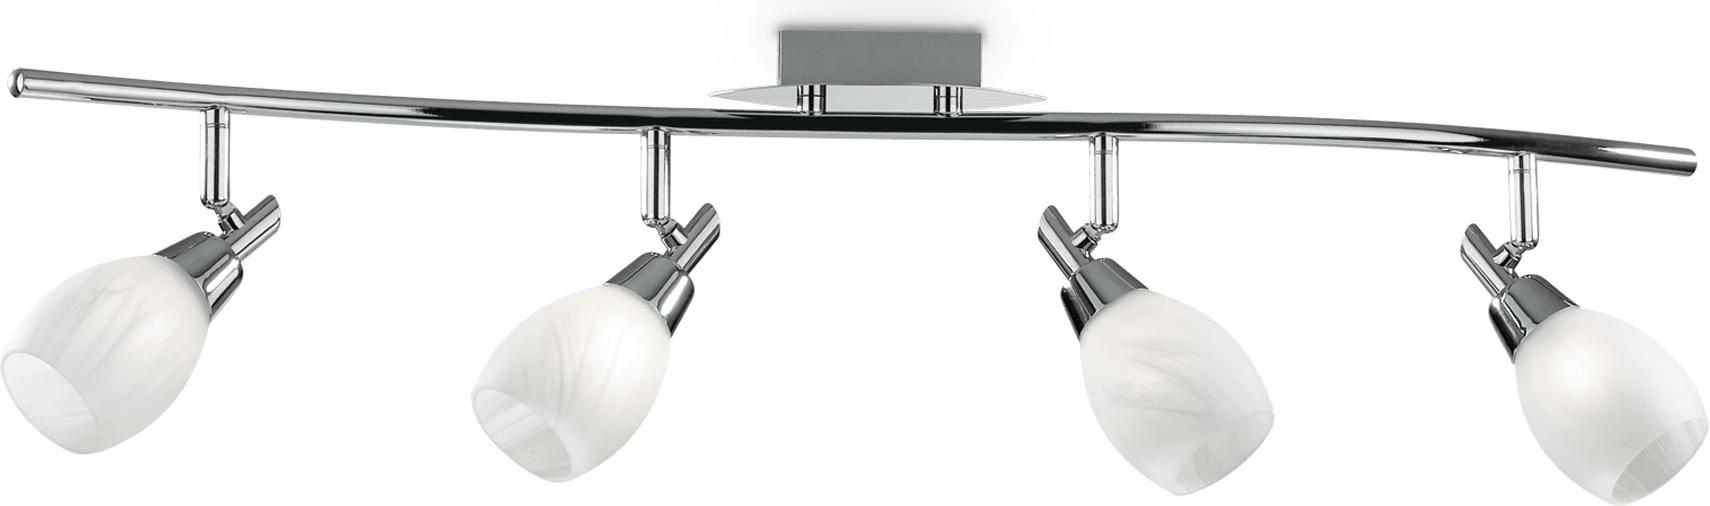 Ideal lux LED soffio pl4 Stelle Leuchte 4x4,5W 75082